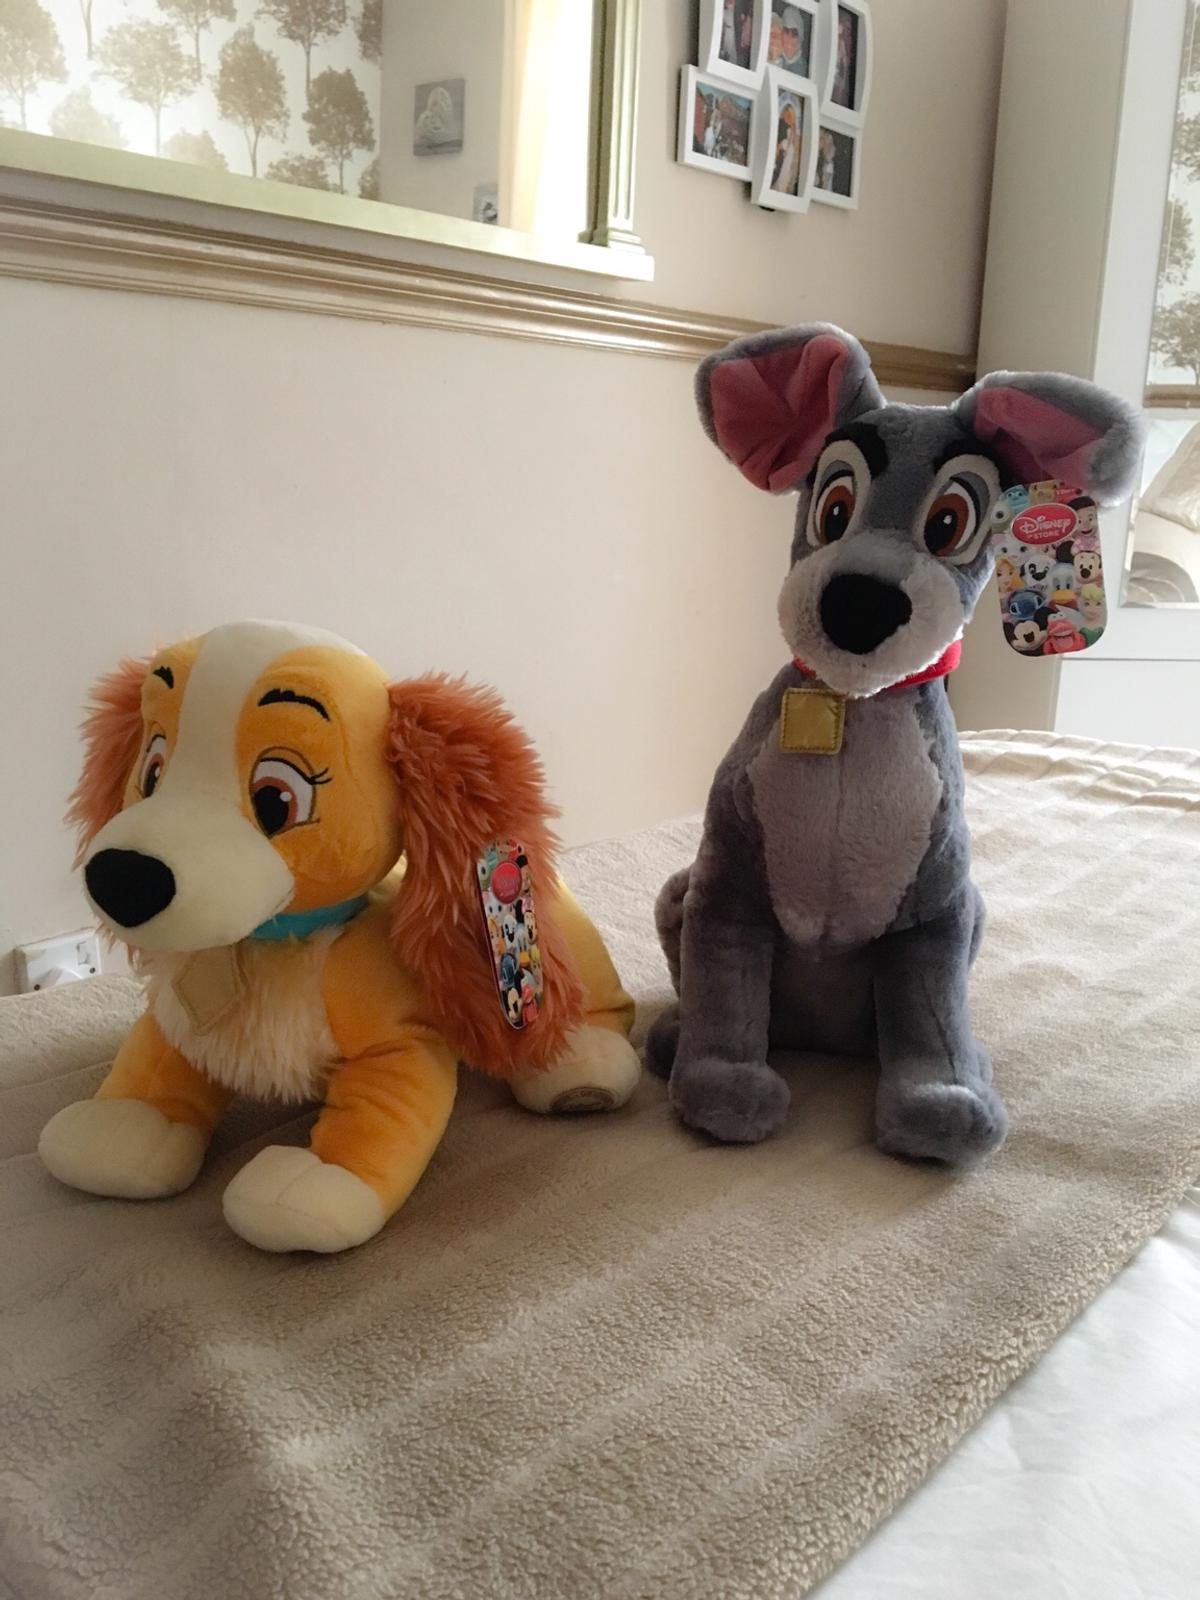 Lady The Tramp Plush In B64 Sandwell For 15 00 For Sale Shpock